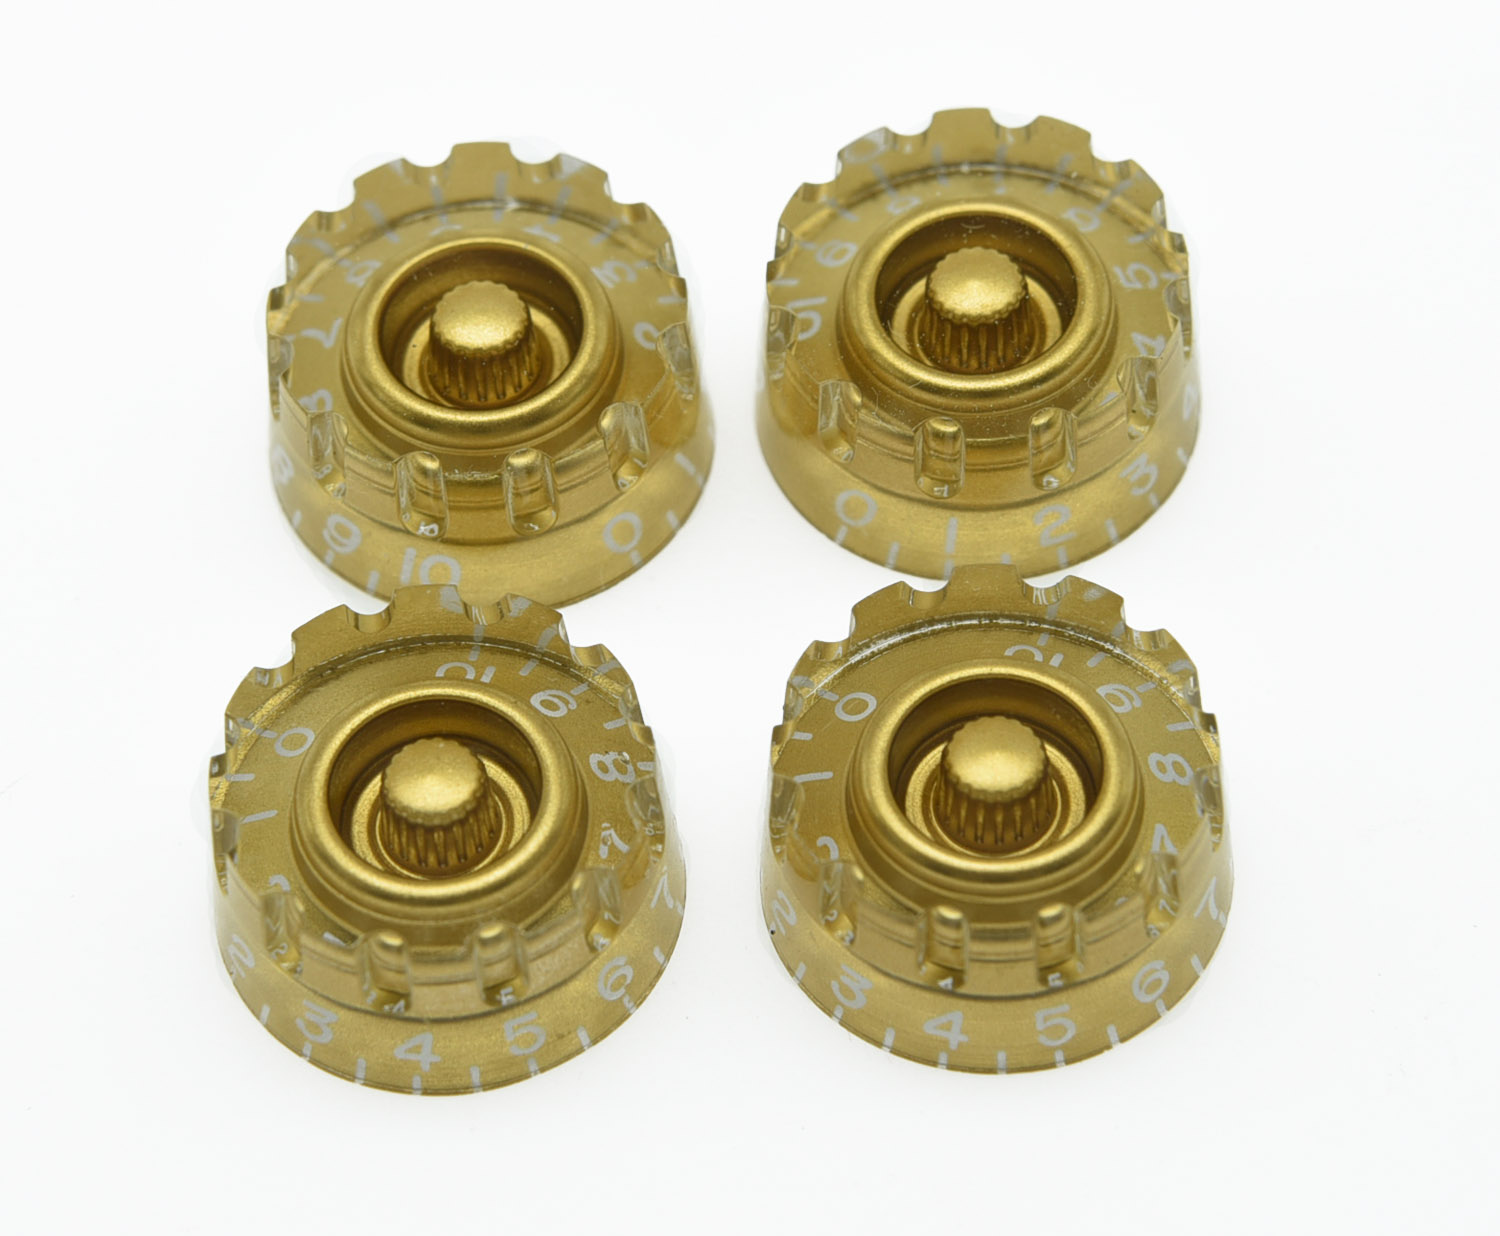 4x Gold LP Guitar Knurled Control Knobs Speed Metric Knob Fits LP phil collins singles 4 lp